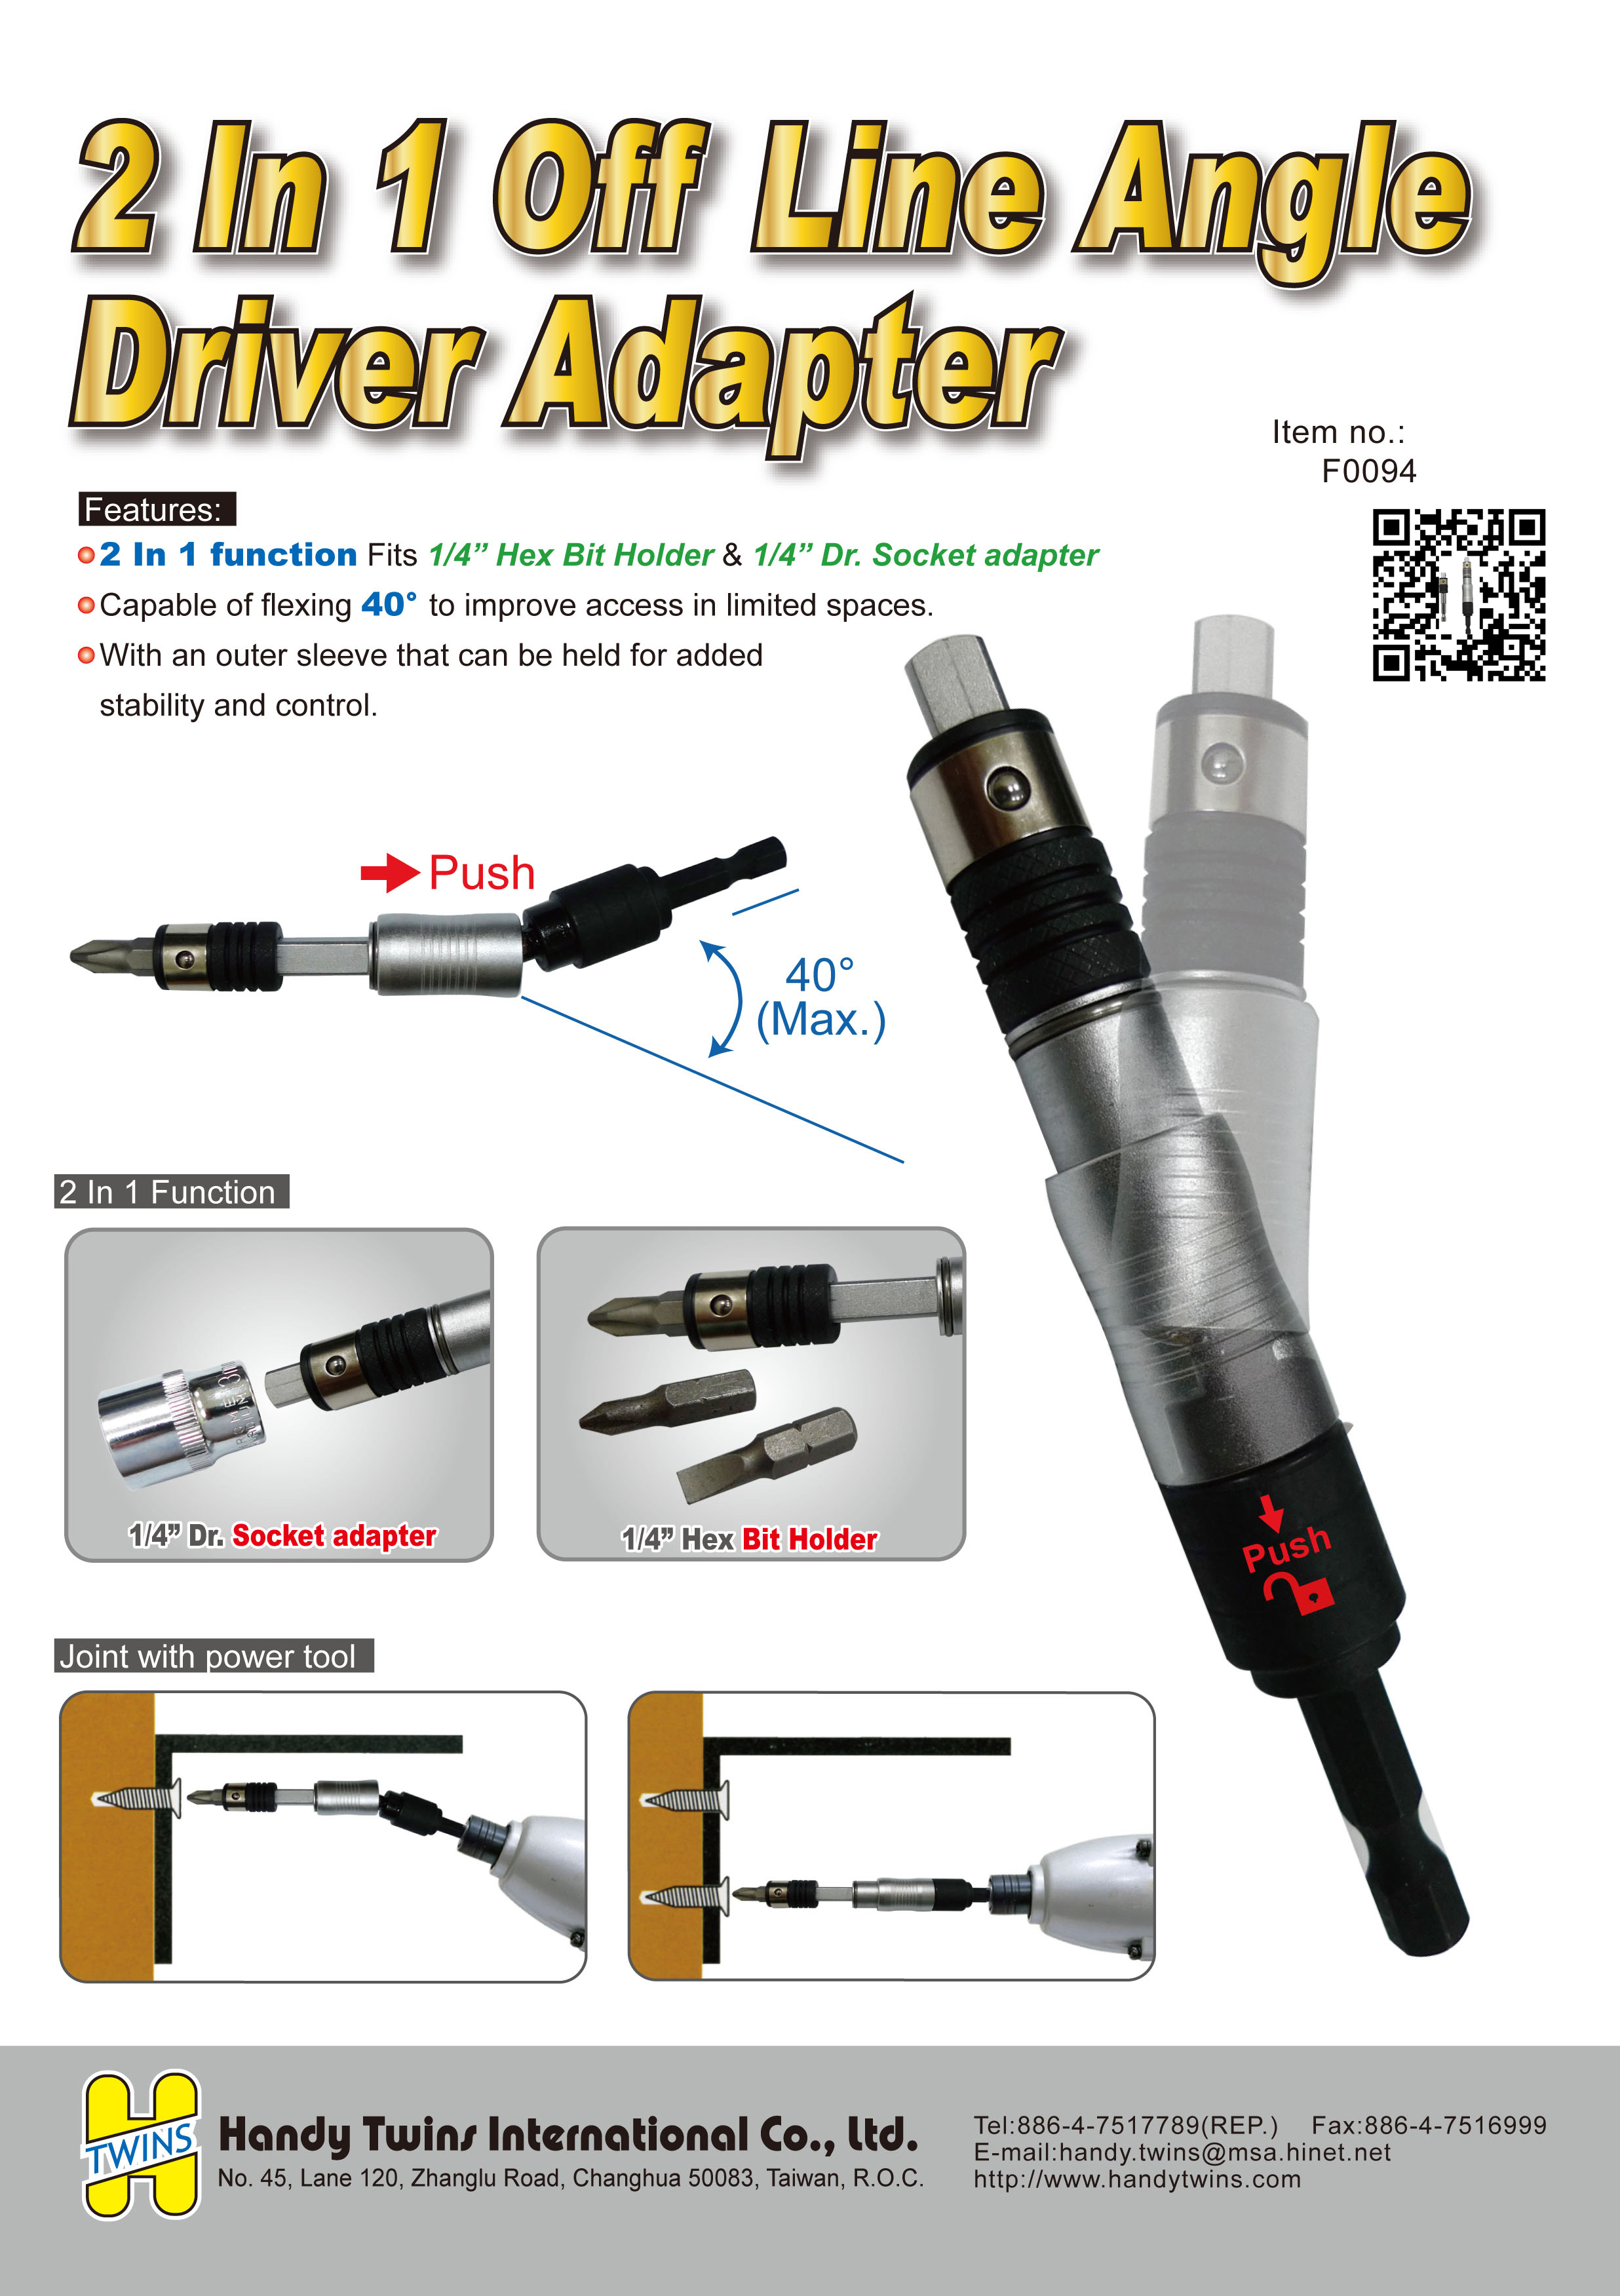 F0094-2 In 1 Off Line Angle Driver Adapter